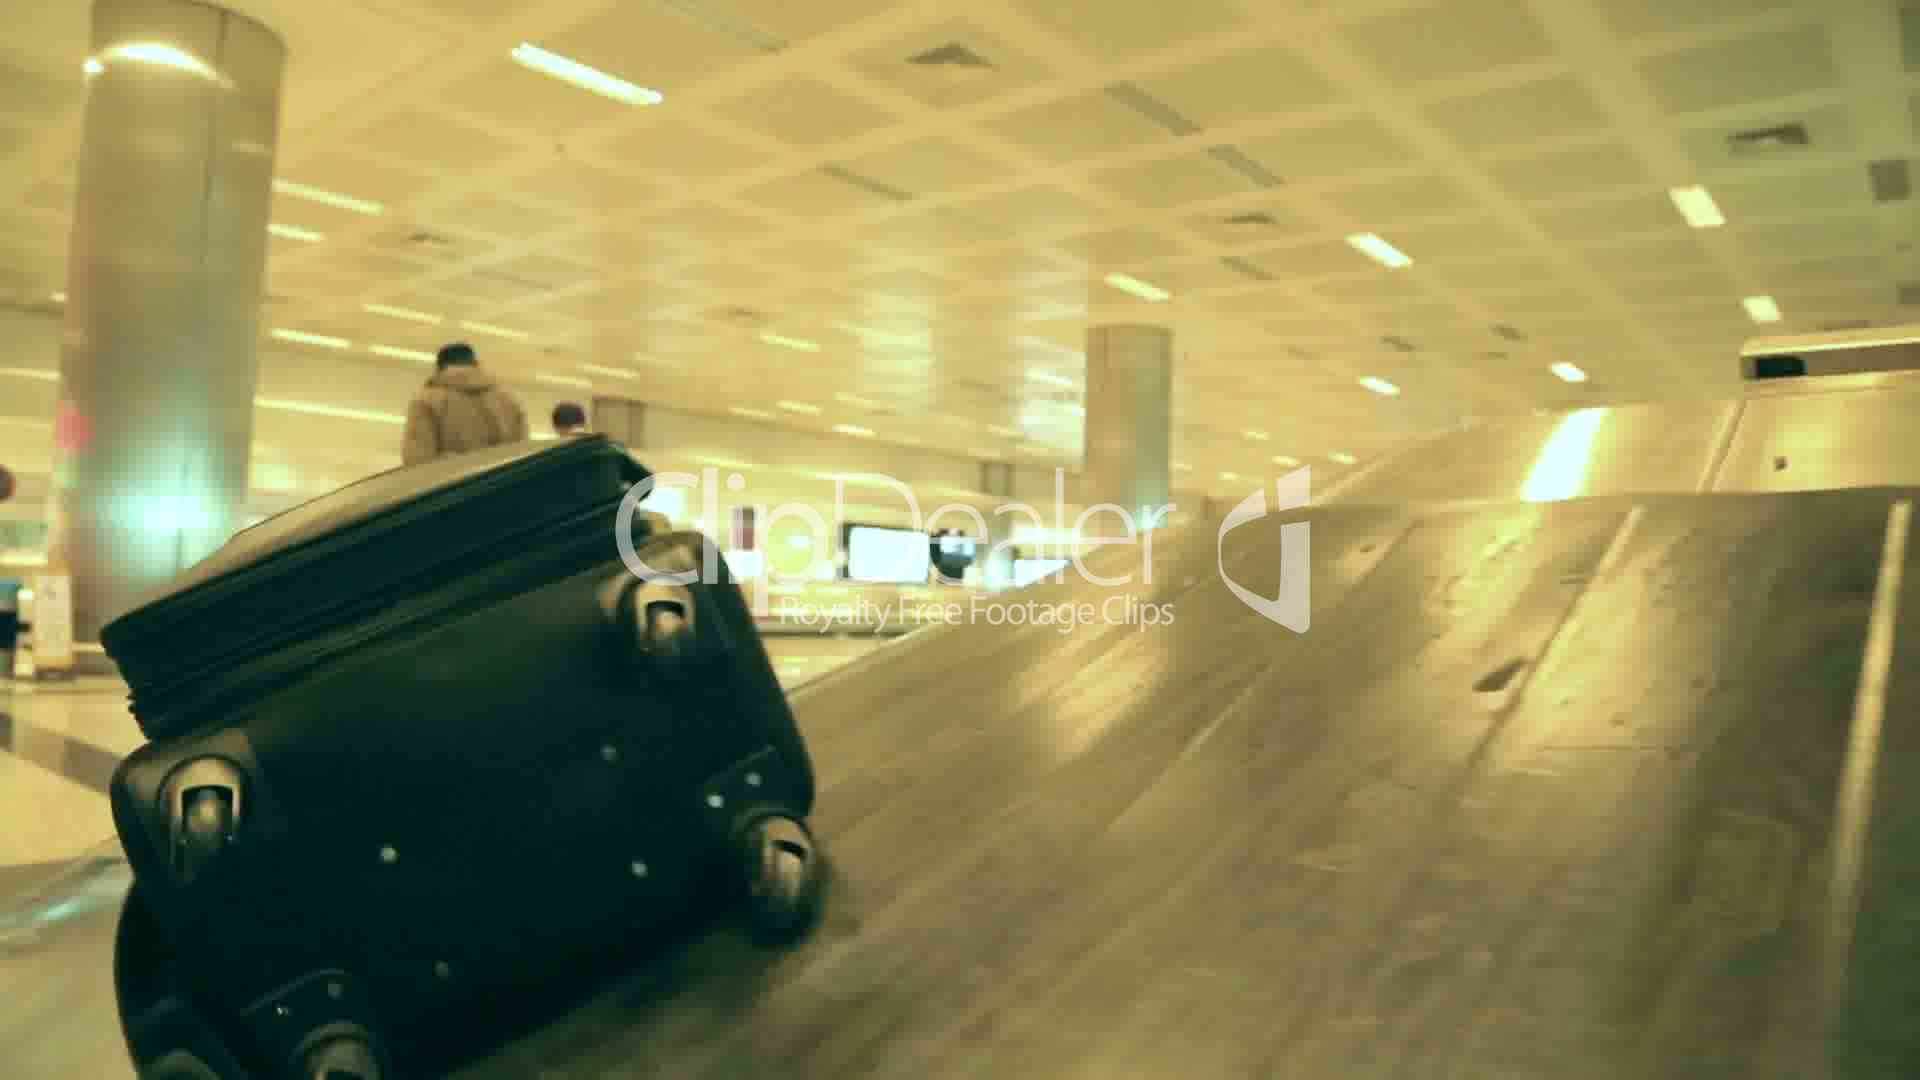 baggage claim online dating Baggage claim full movie online for free in hd quality if the dating process depicted here is humiliating for the character of montana moore.